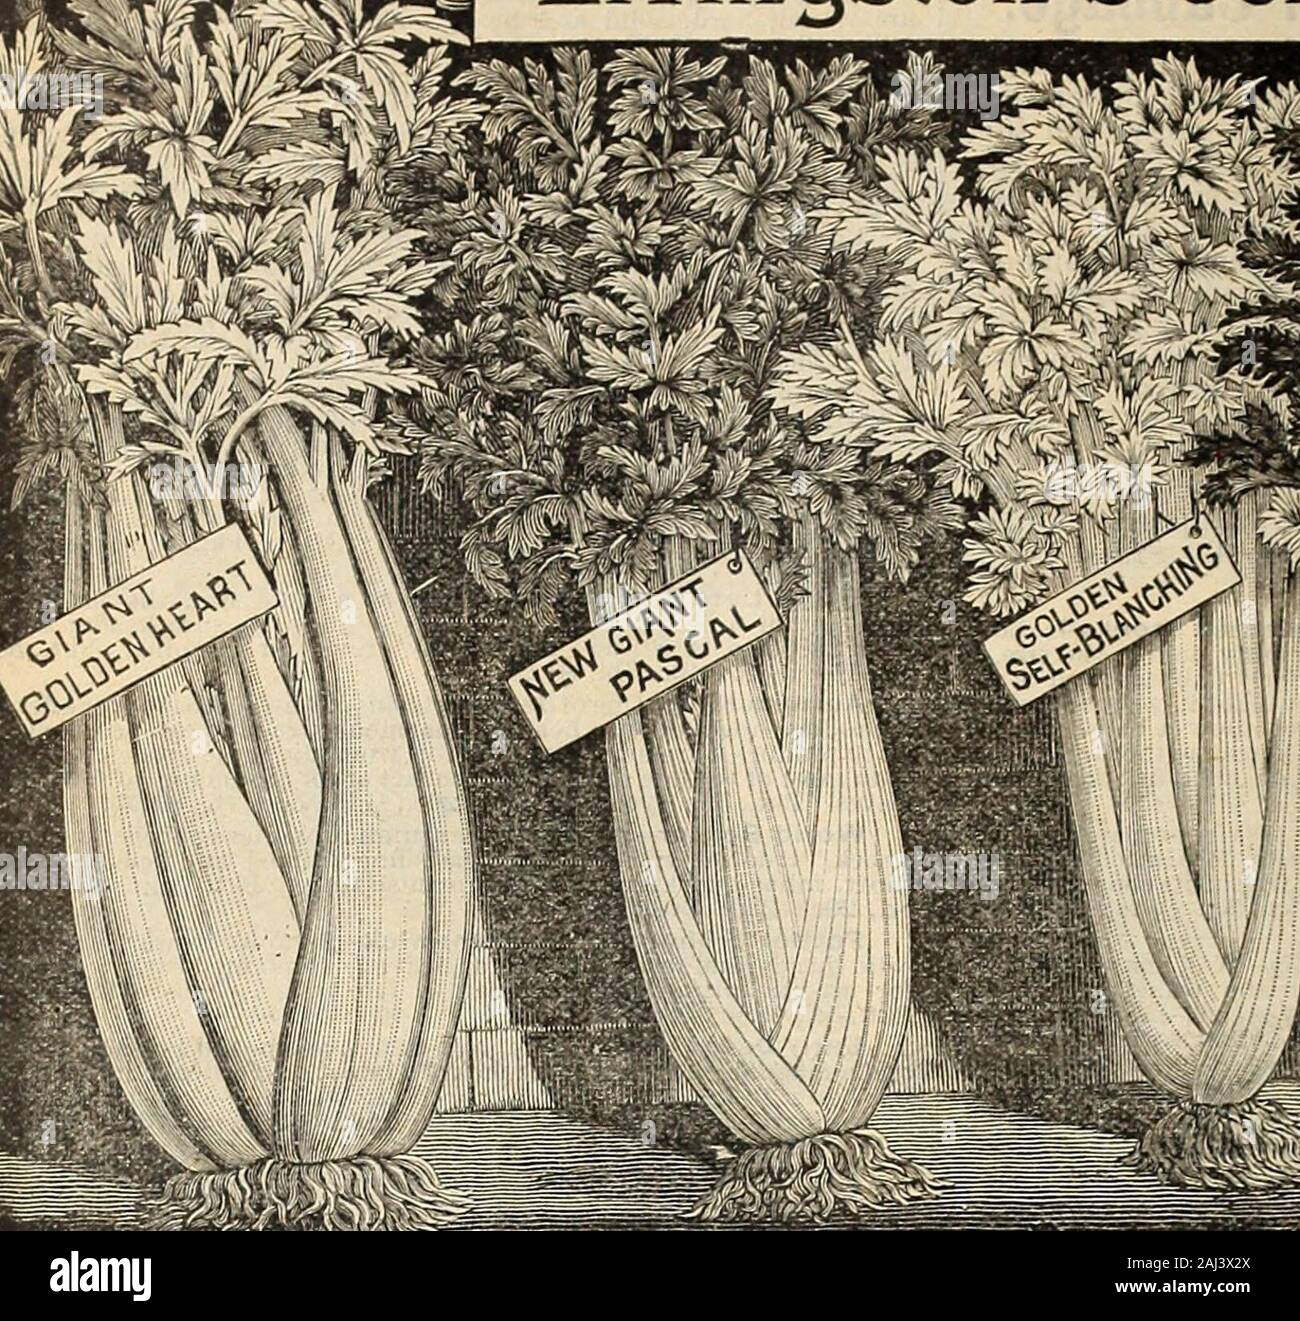 seed annual itl l uk ilckling cabbage 26 a w livingstons sons columbus ohio liivingstons celery seed stock photo alamy alamy